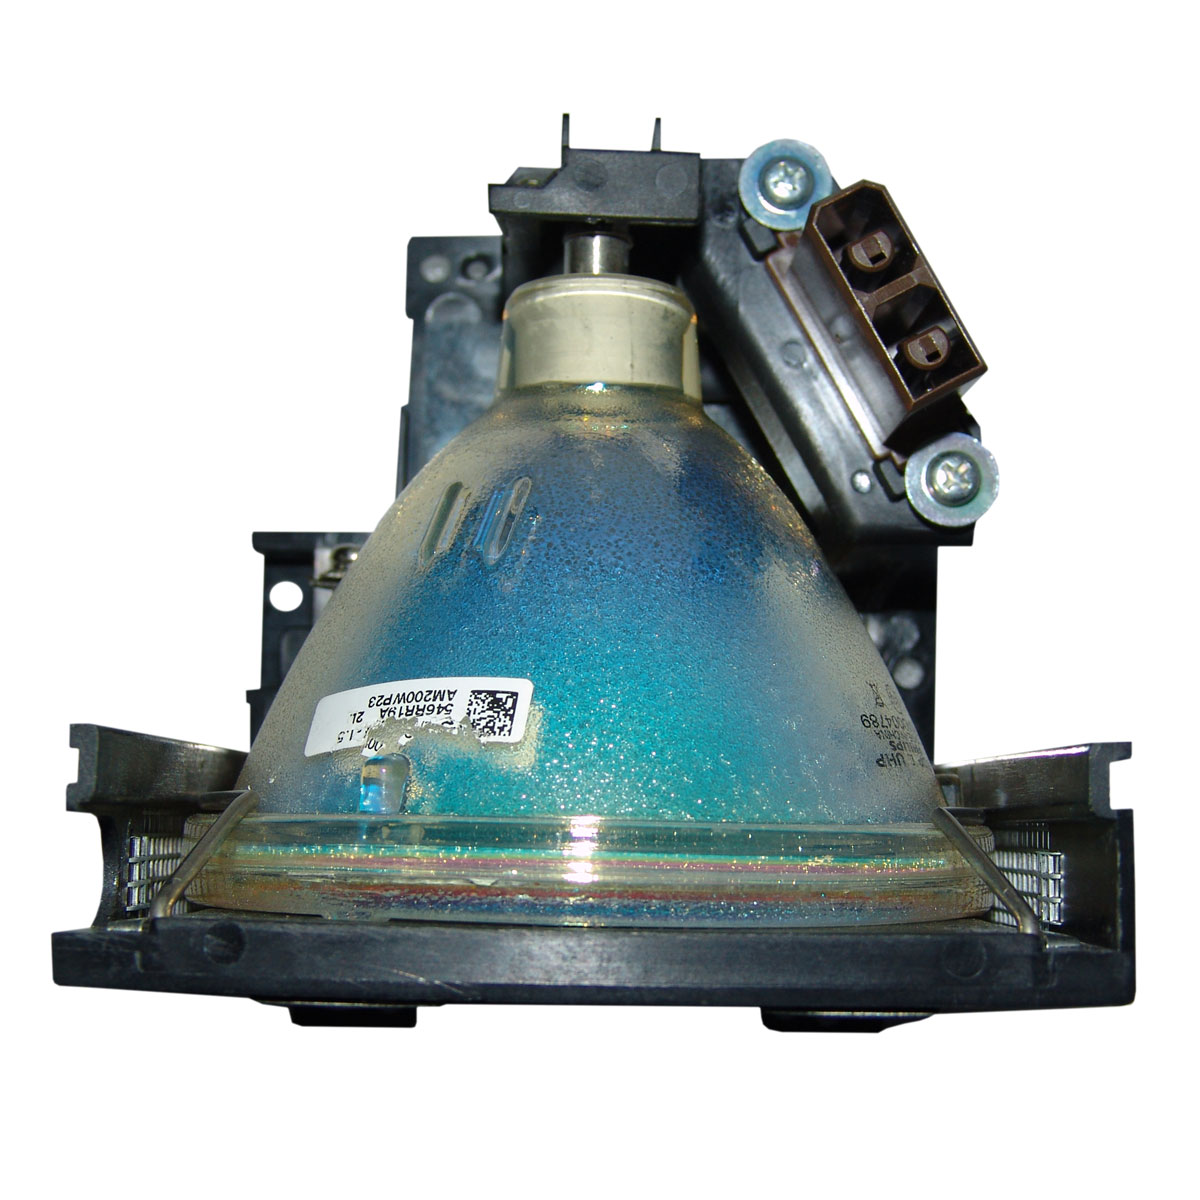 Projector Lamp Assembly with Genuine Original Philips UHP Bulb Inside. XG-P20XE Sharp Projector Lamp Replacement